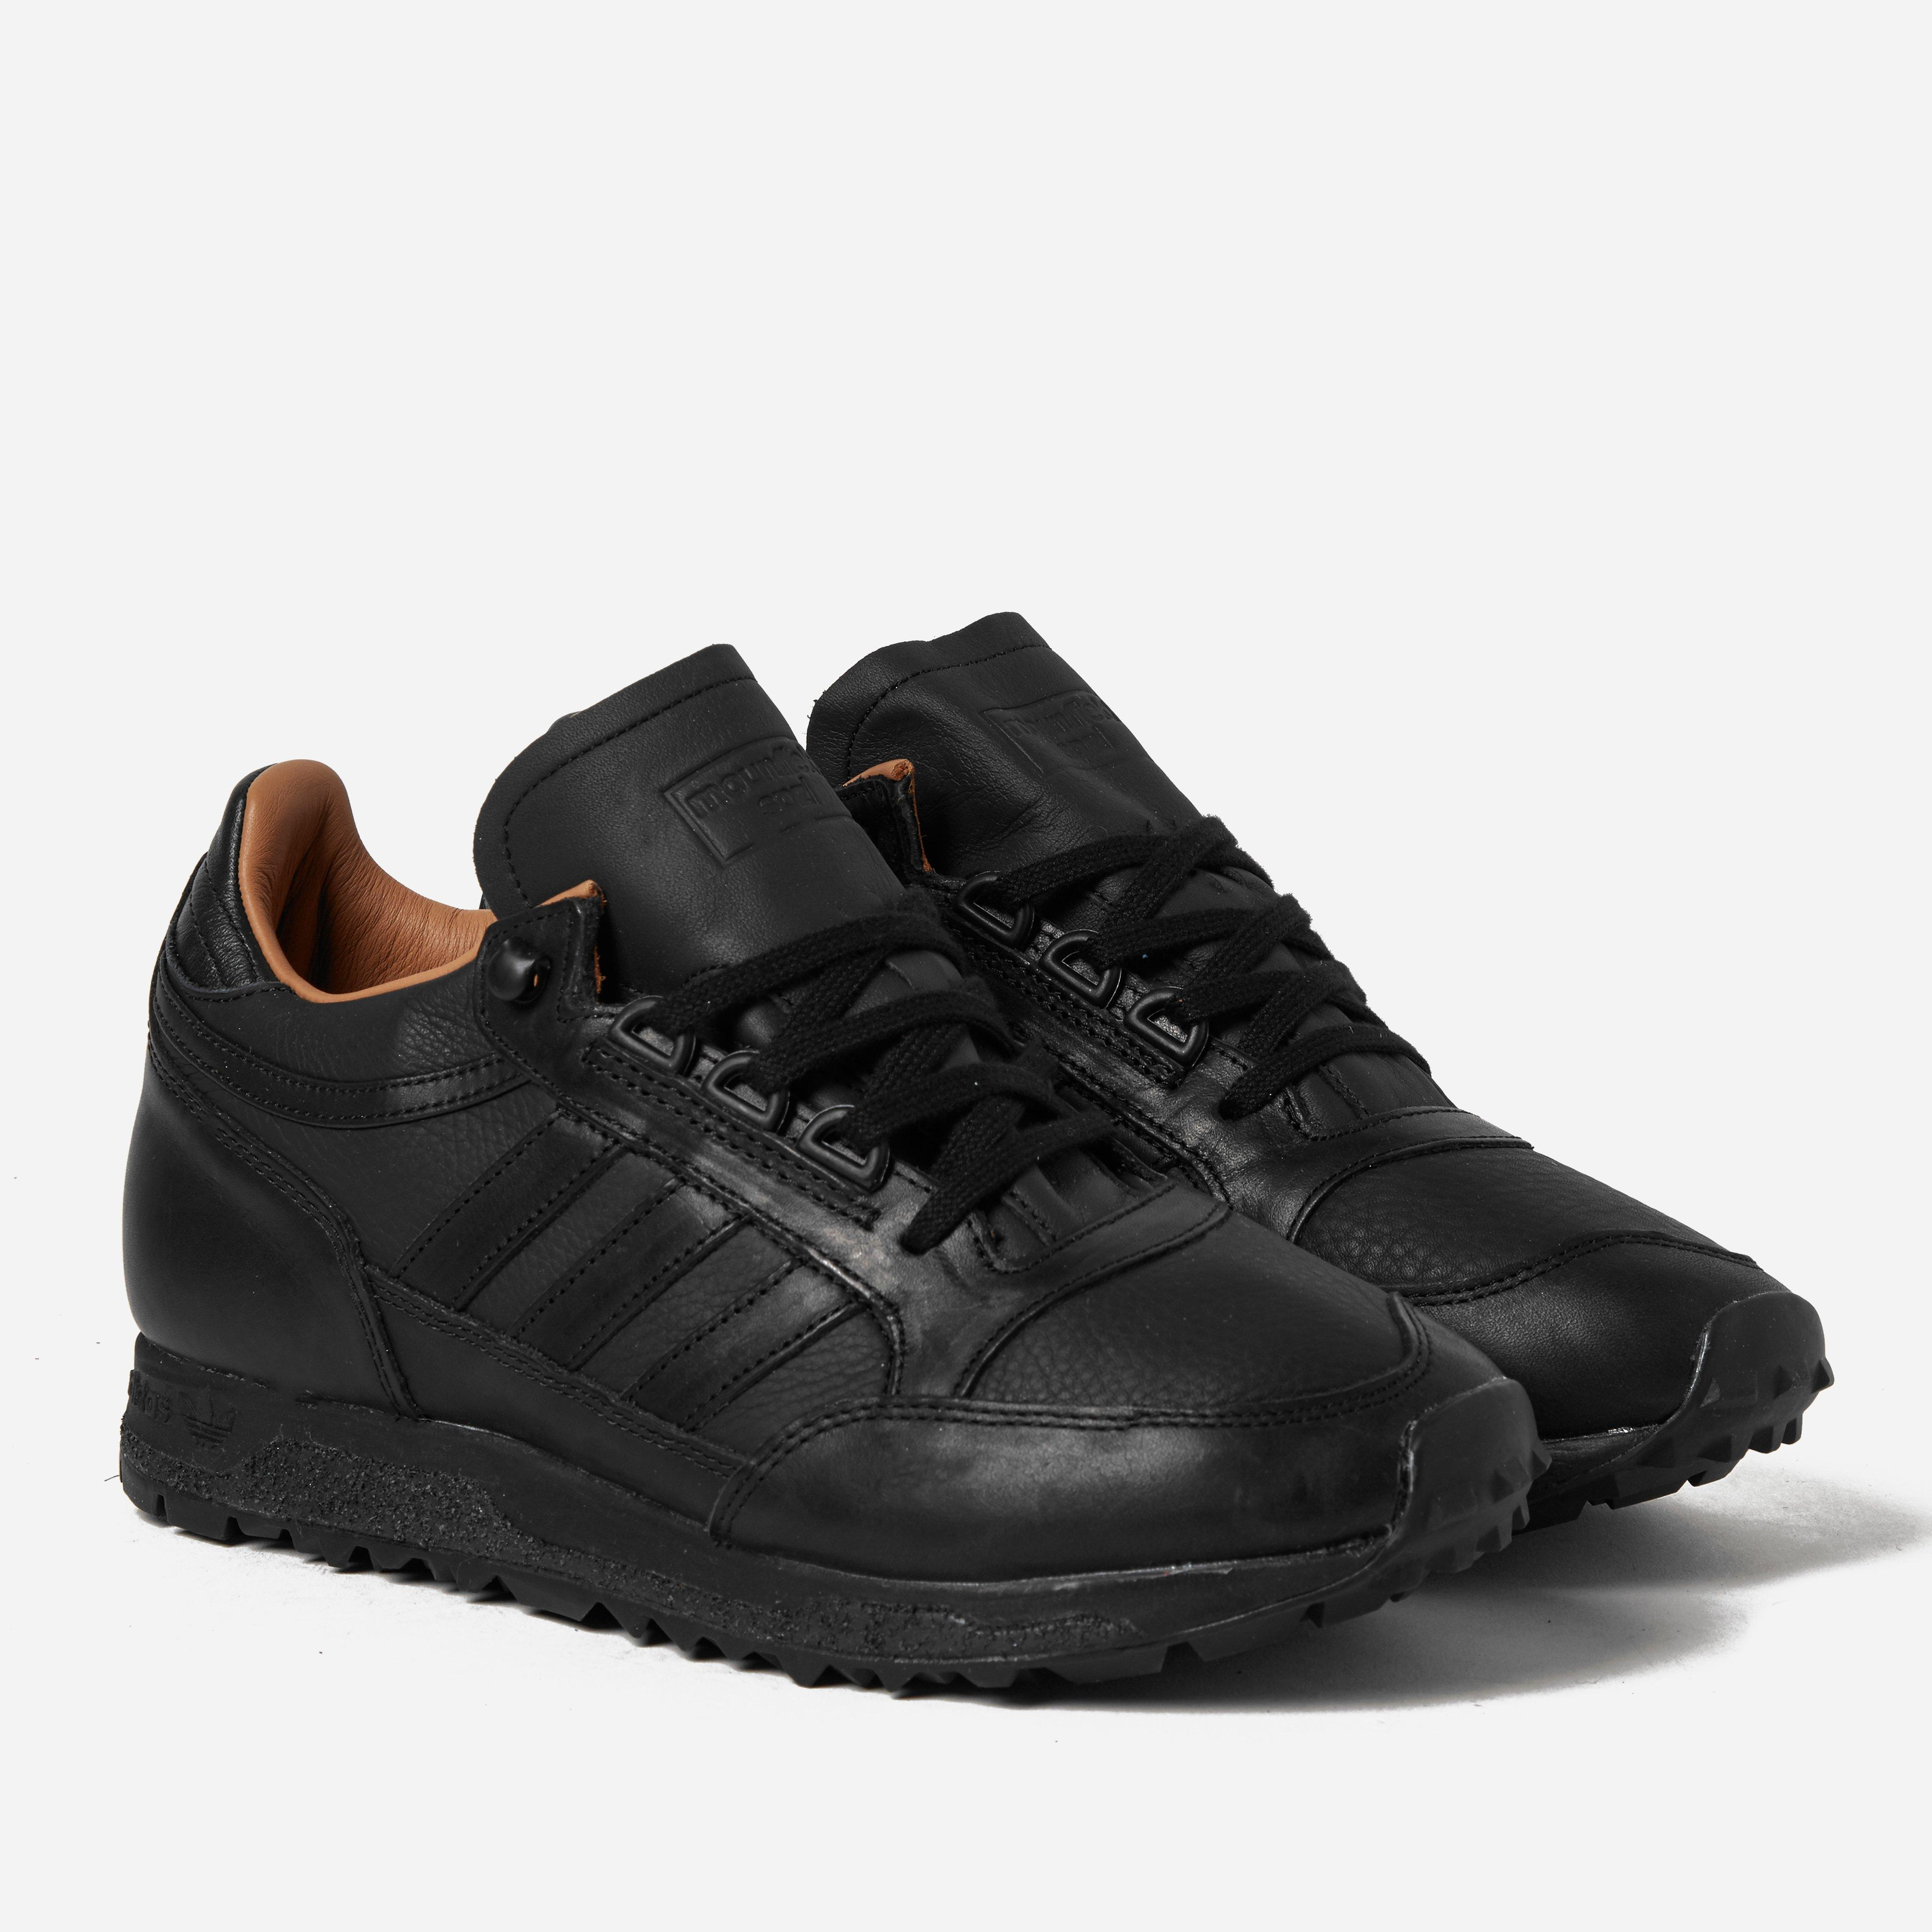 adidas Originals Spezial Mounfield II